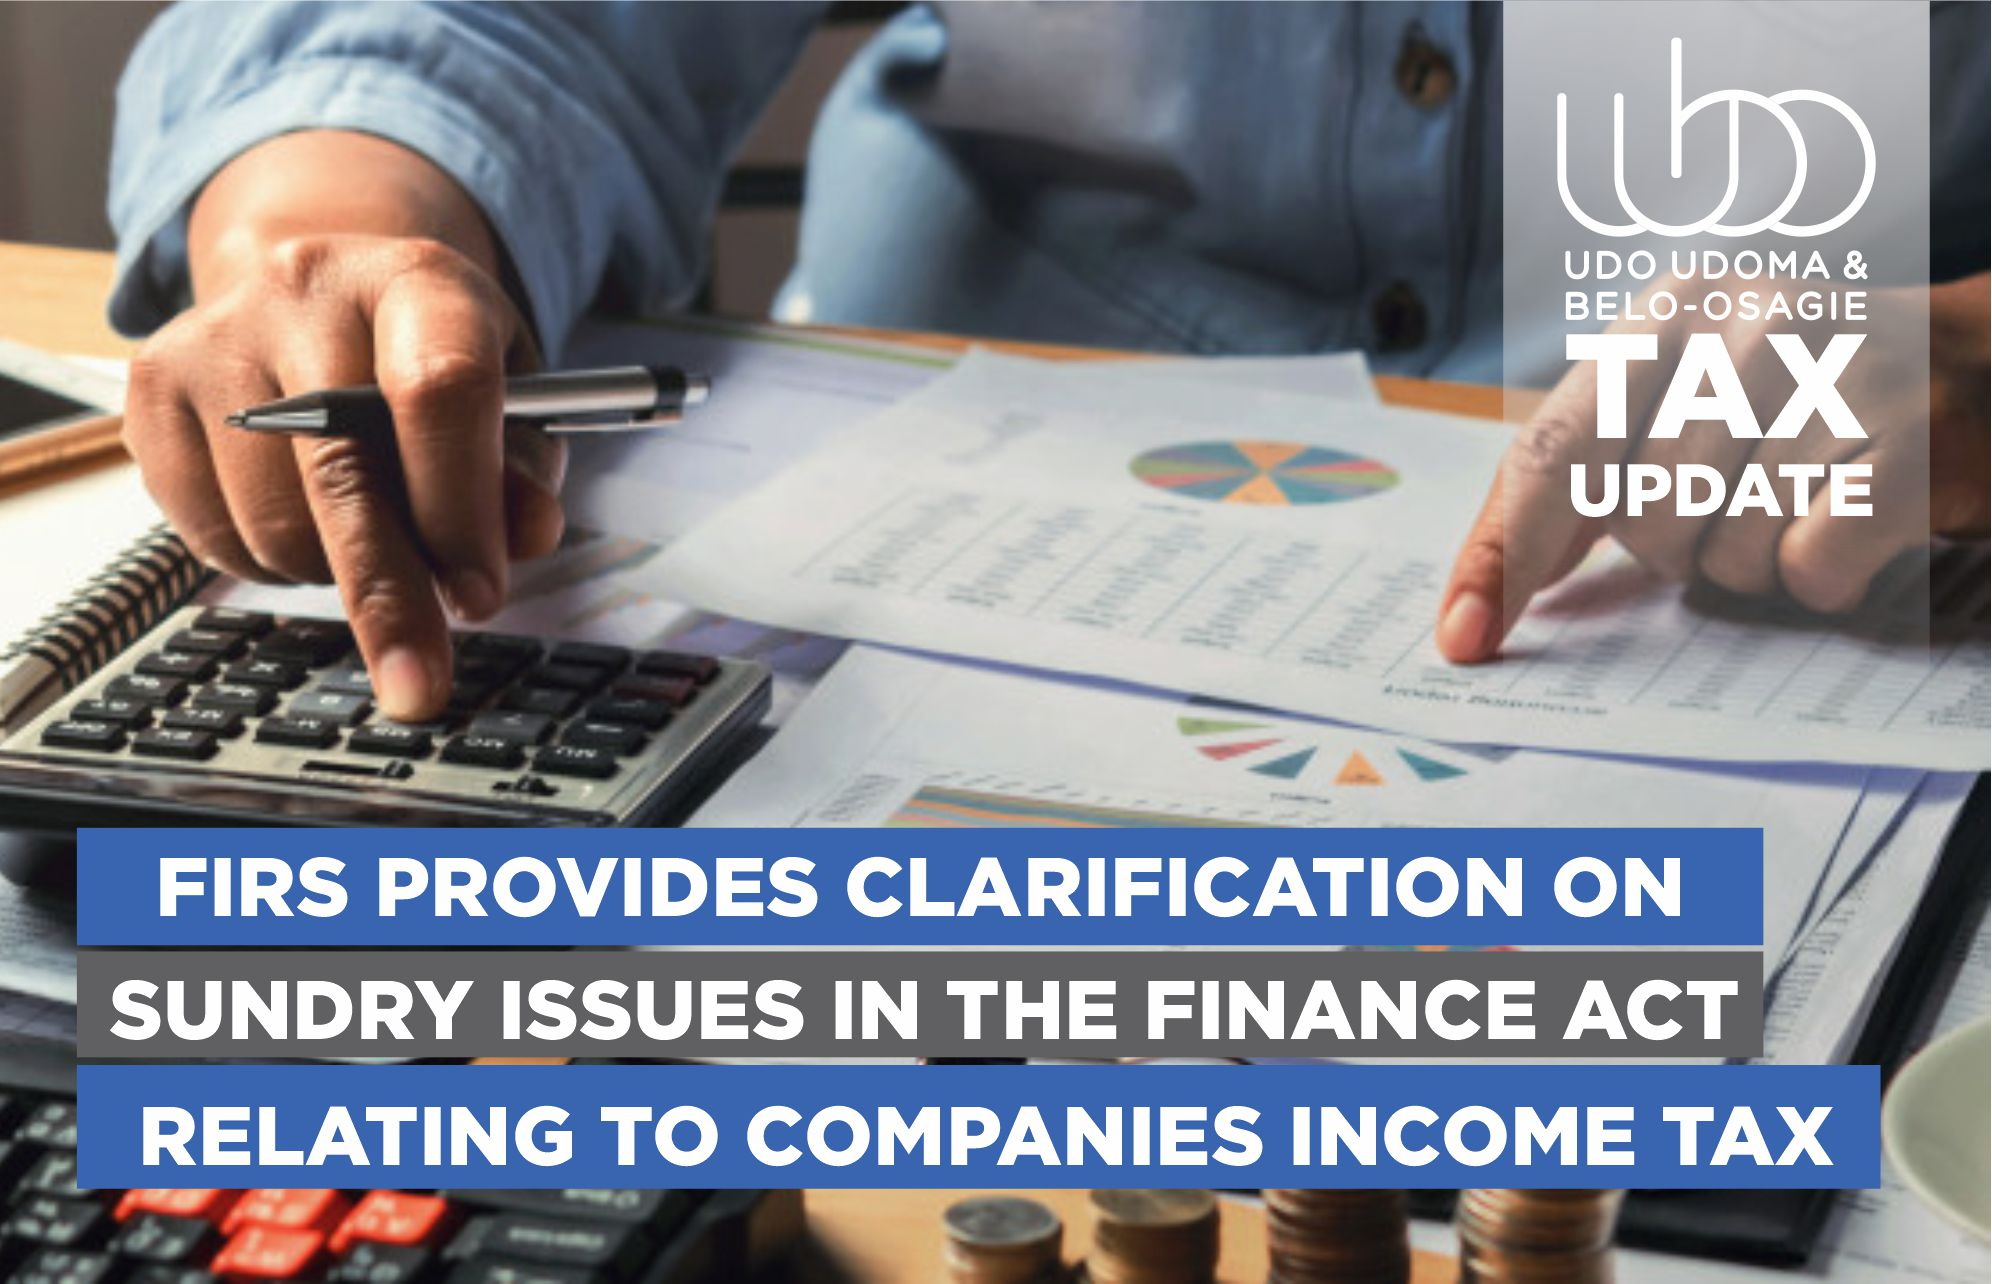 FIRS PROVIDES CLARIFICATION ON SUNDRY ISSUES IN THE FINANCE ACT RELATING TO COMPANIES INCOME TAX